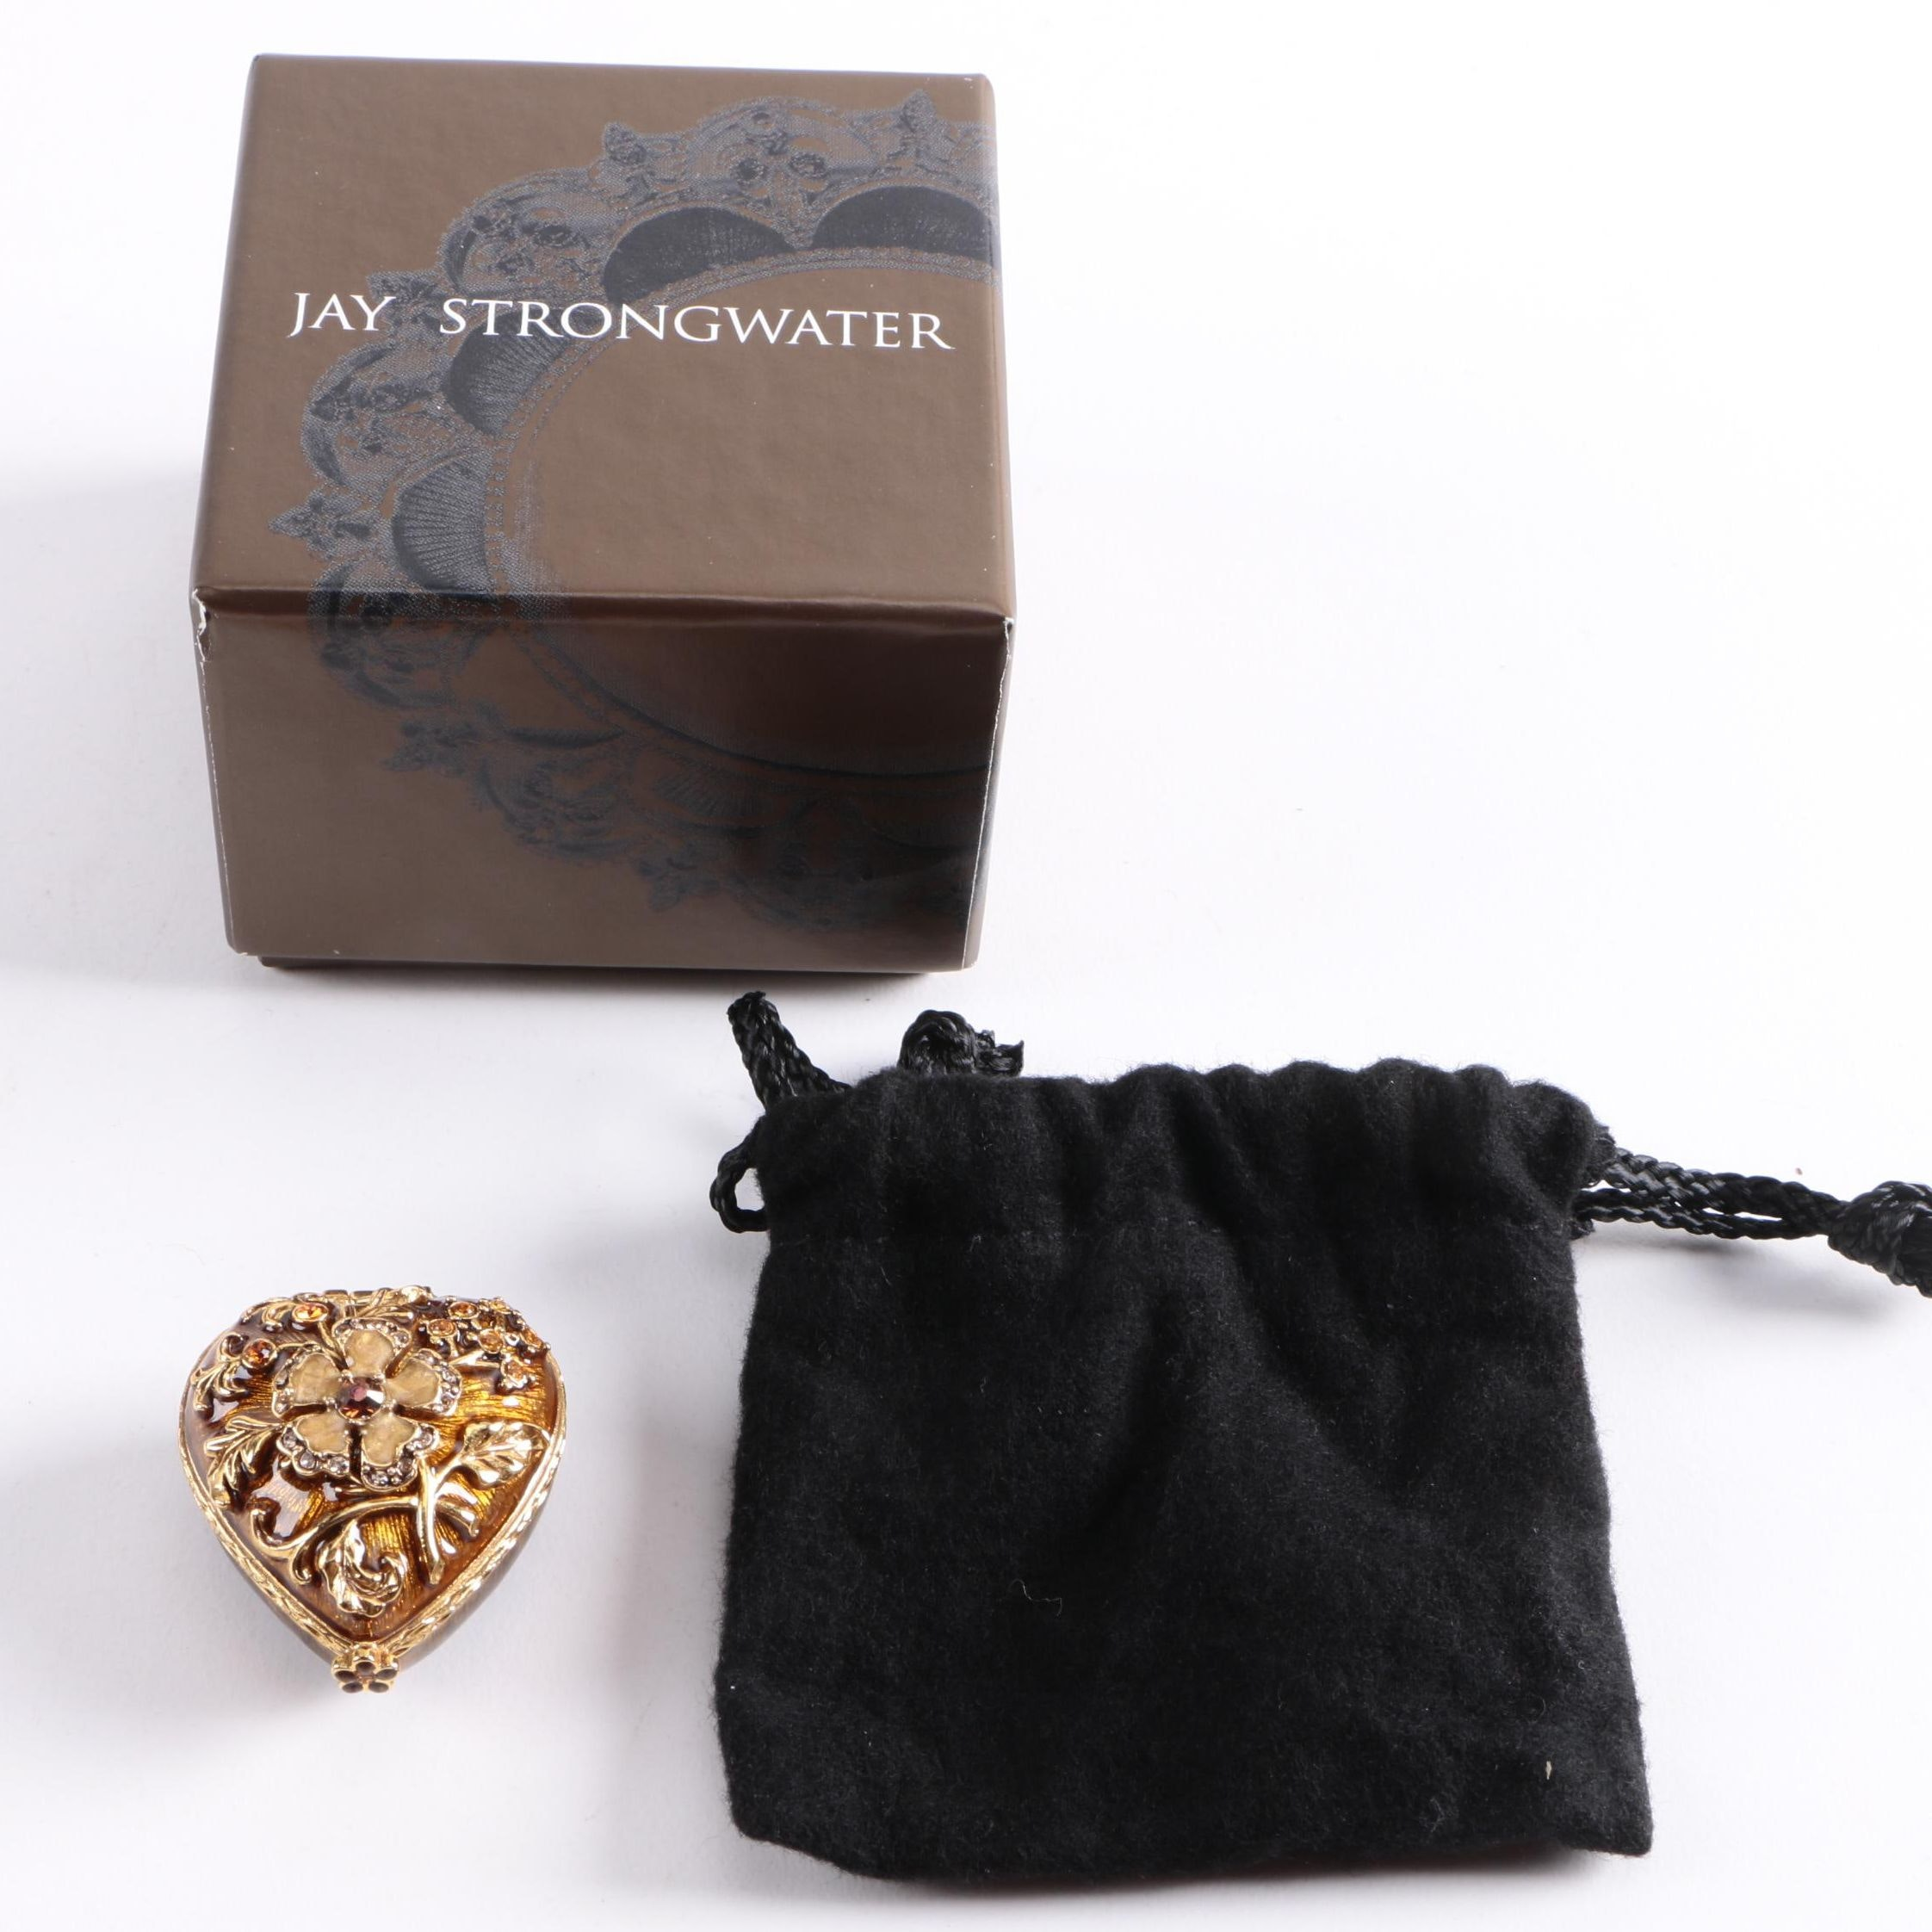 Jay Strongwater Small Heart Shaped Trinket Box